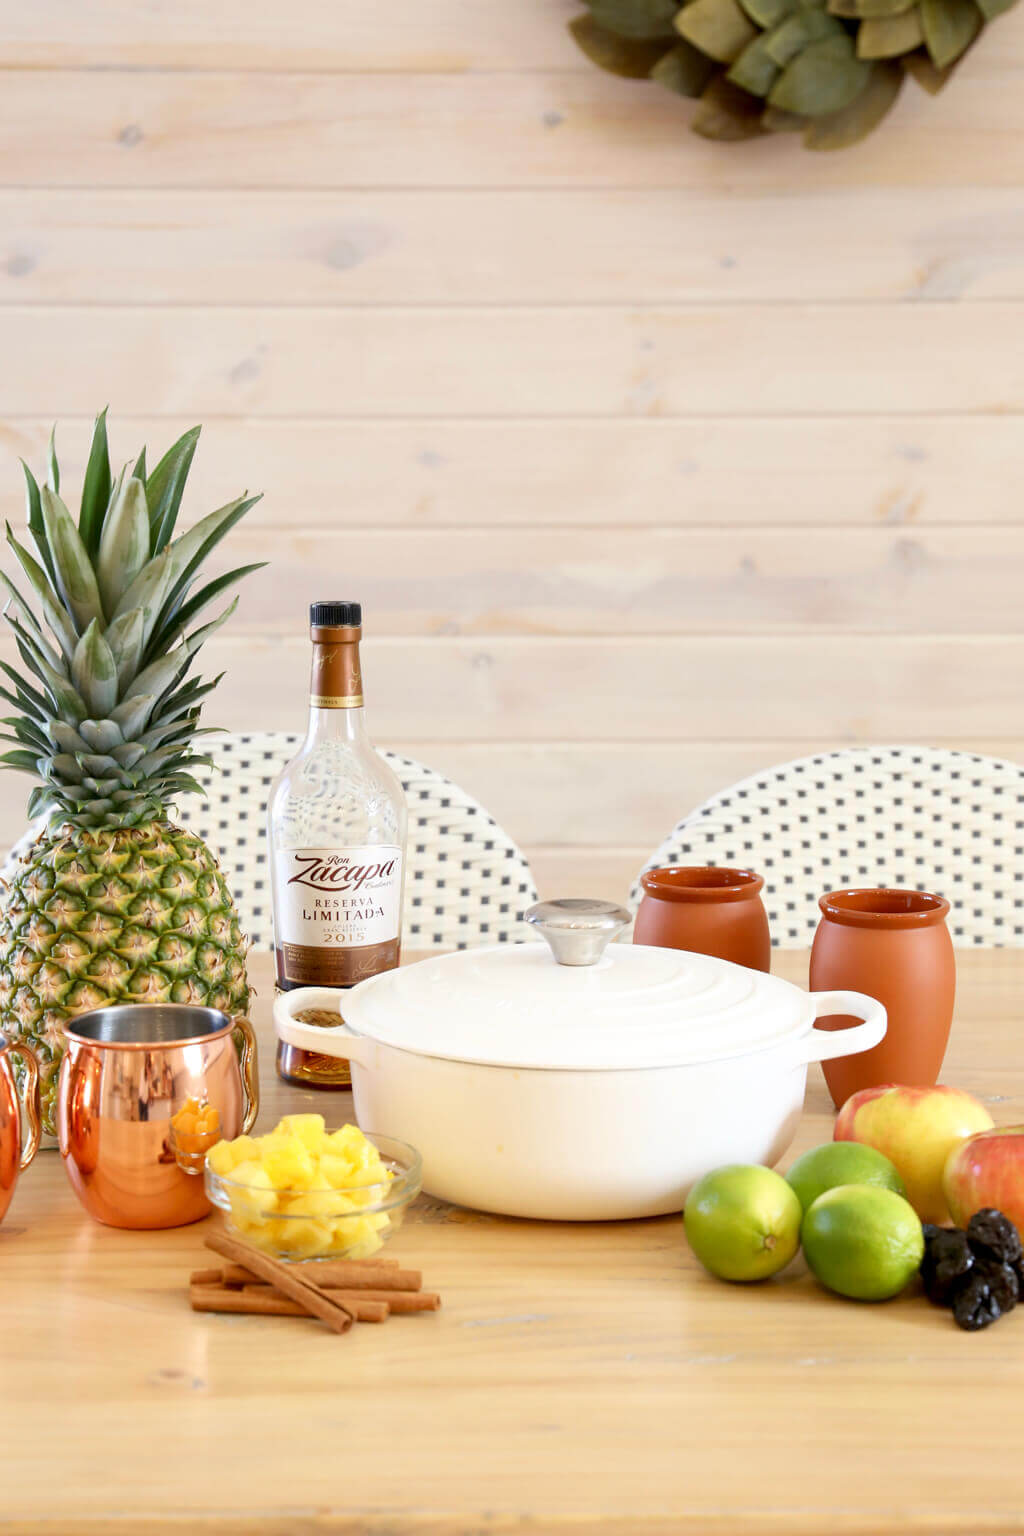 a pot, chopped pineapple, limes, apples, prunes, rum and copper mugs